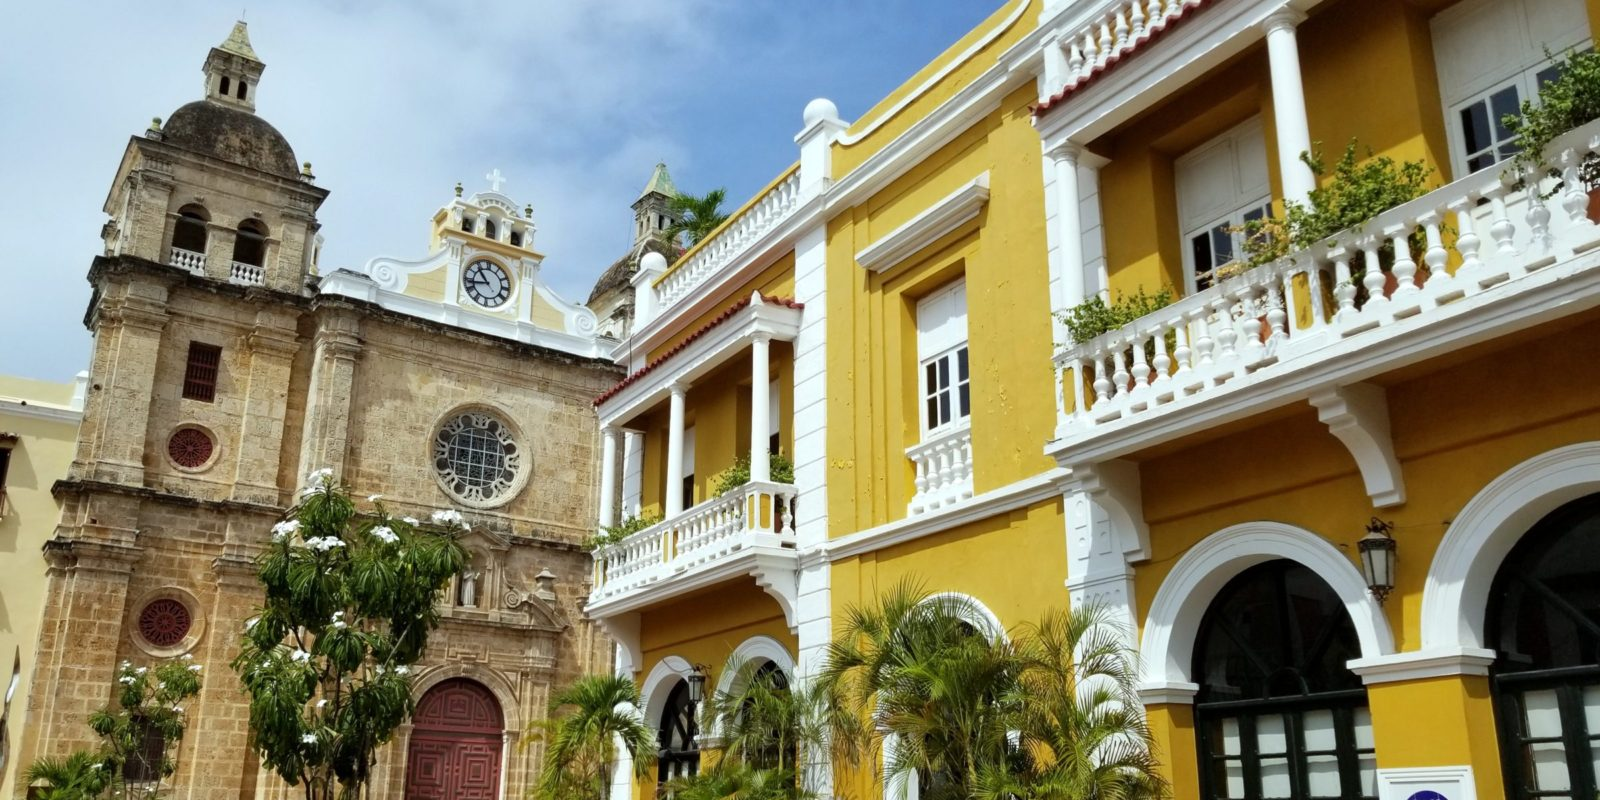 Despite our first impression of Cartagena being very costly, it can and should be visited on a budget.